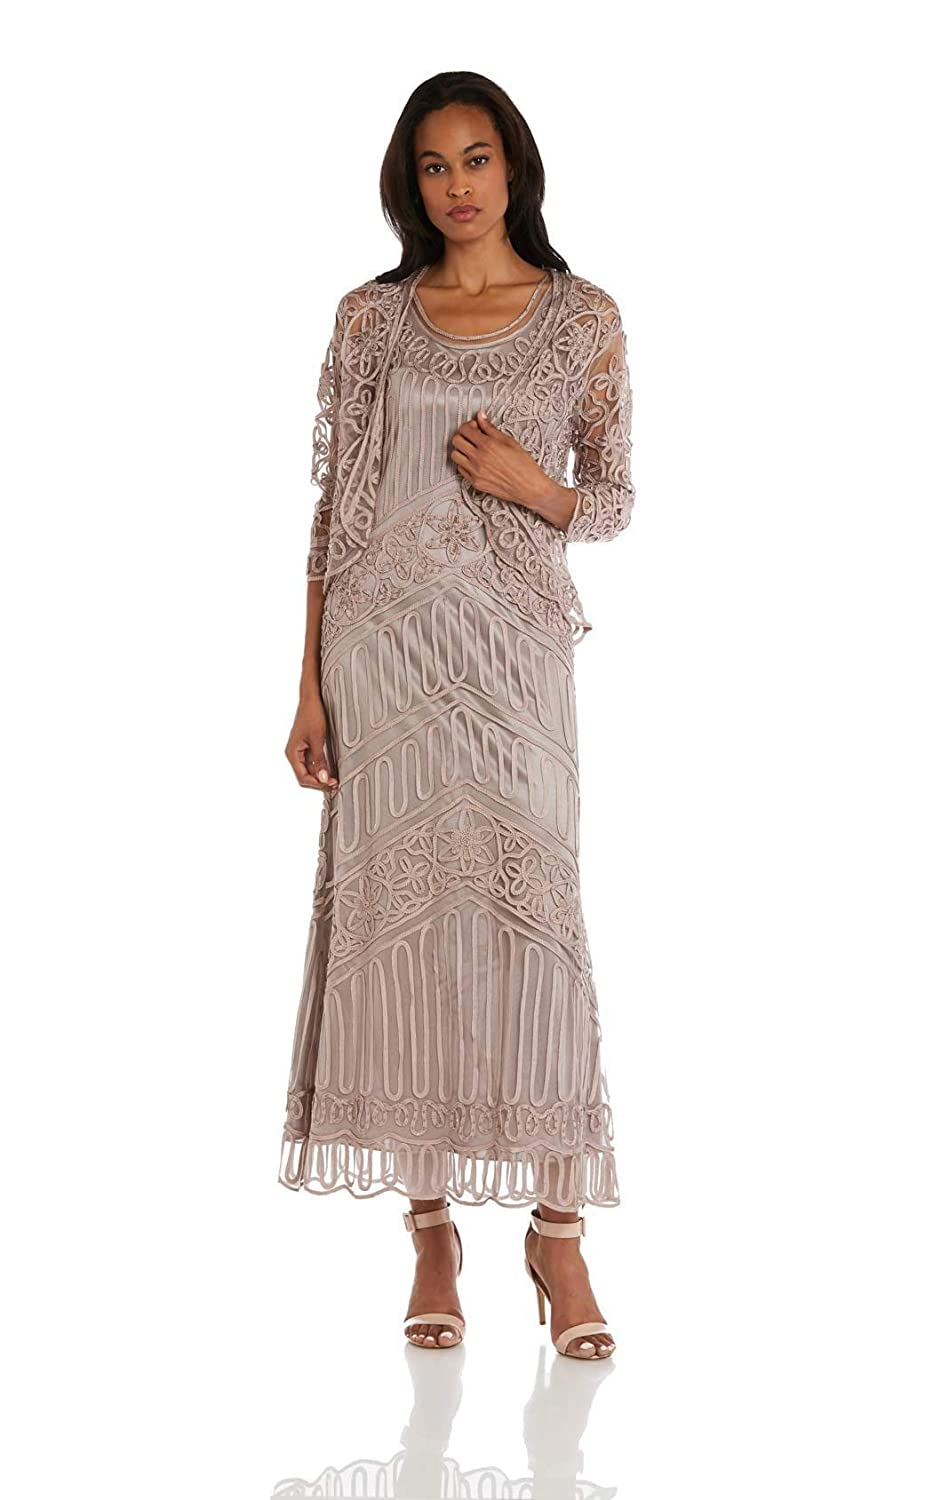 Soulmates 1603 Soutache Lace Embroidered Dress And Jacket